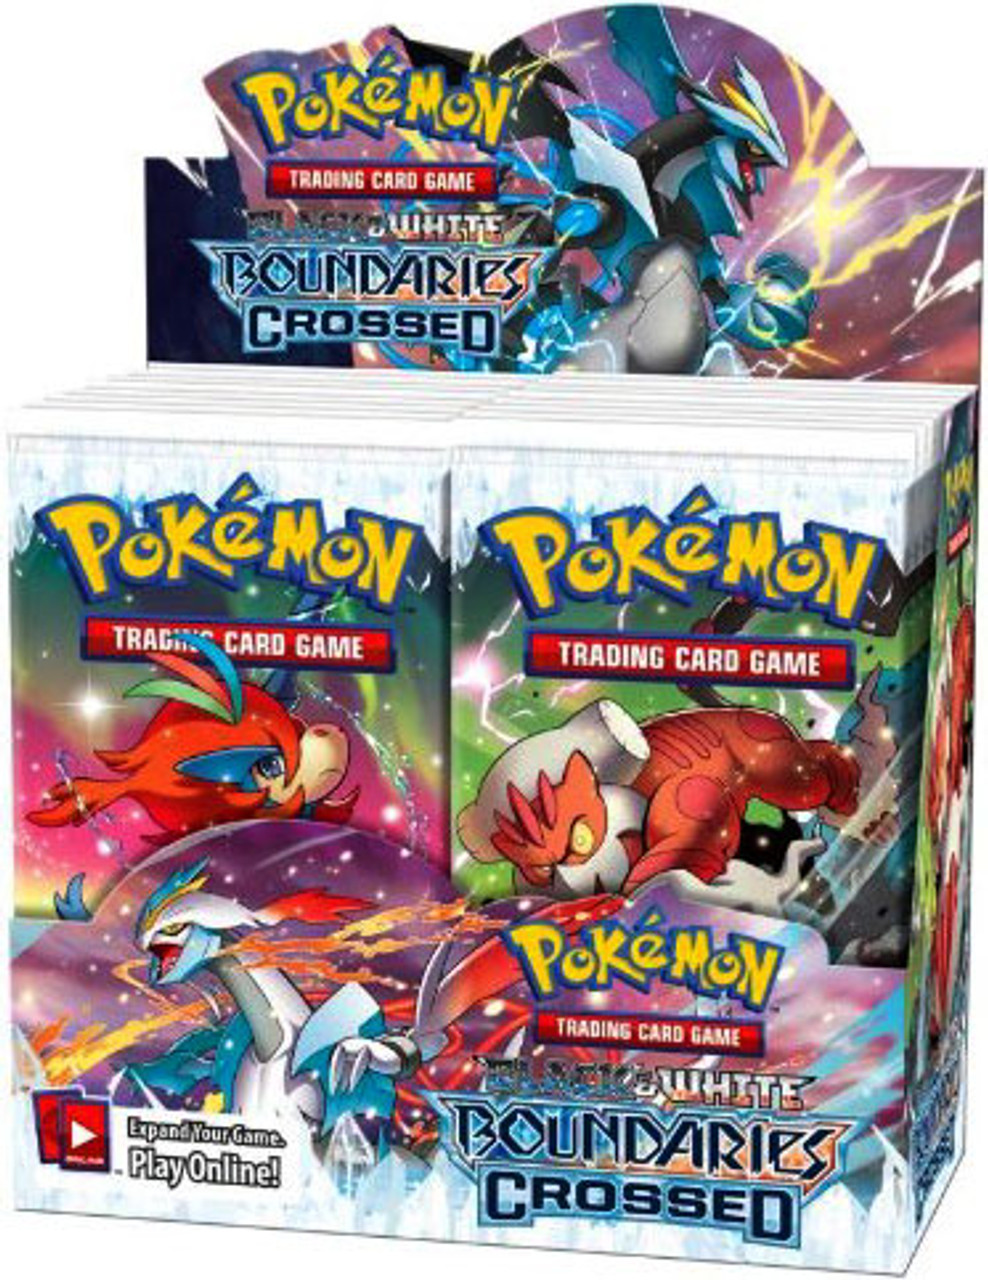 Pokemon Black & White Boundaries Crossed Booster Box [36 Packs]